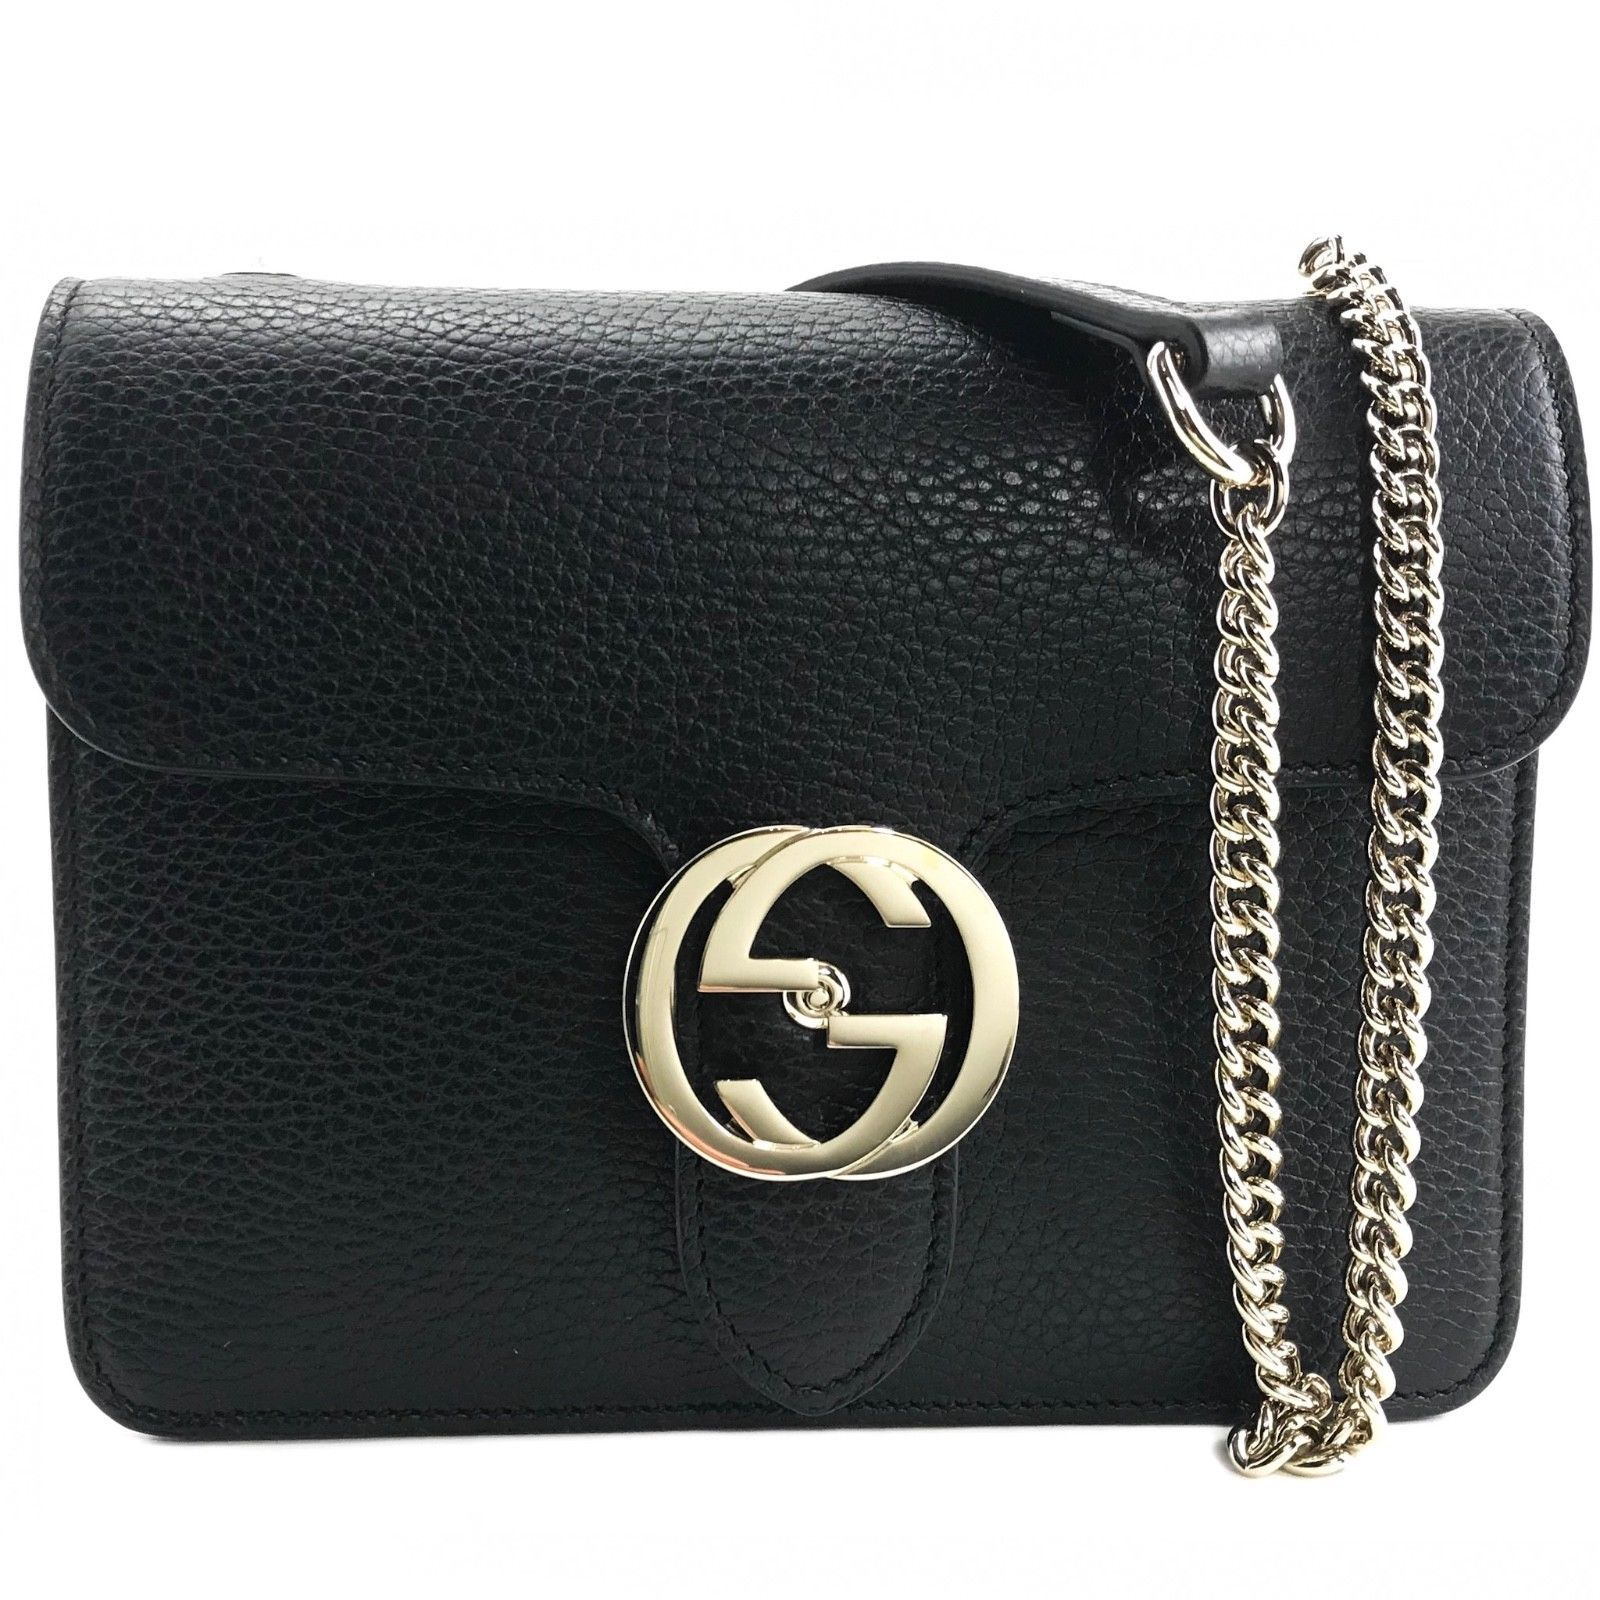 add5b1dc1c12a9 S l1600. S l1600. NEW GUCCI 510304 Interlocking Black Leather Chain Cross  Body Bag